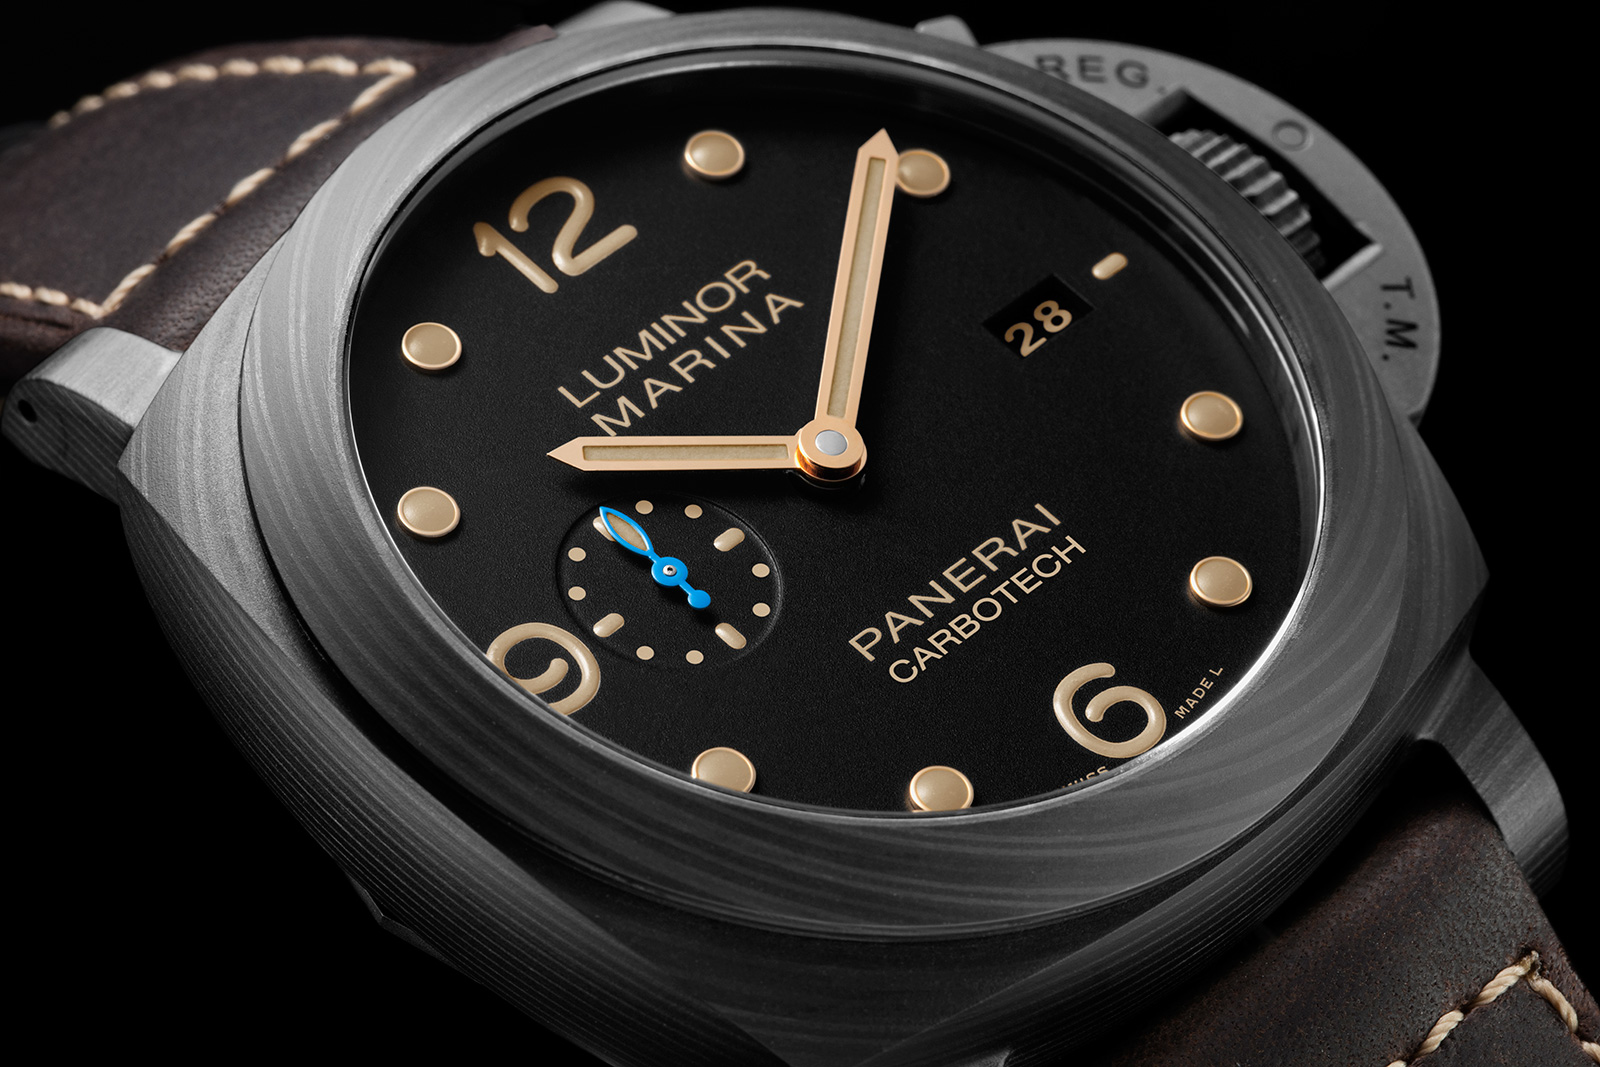 Panerai Luminor Marina 1950 Carbotech PAM661 - 2